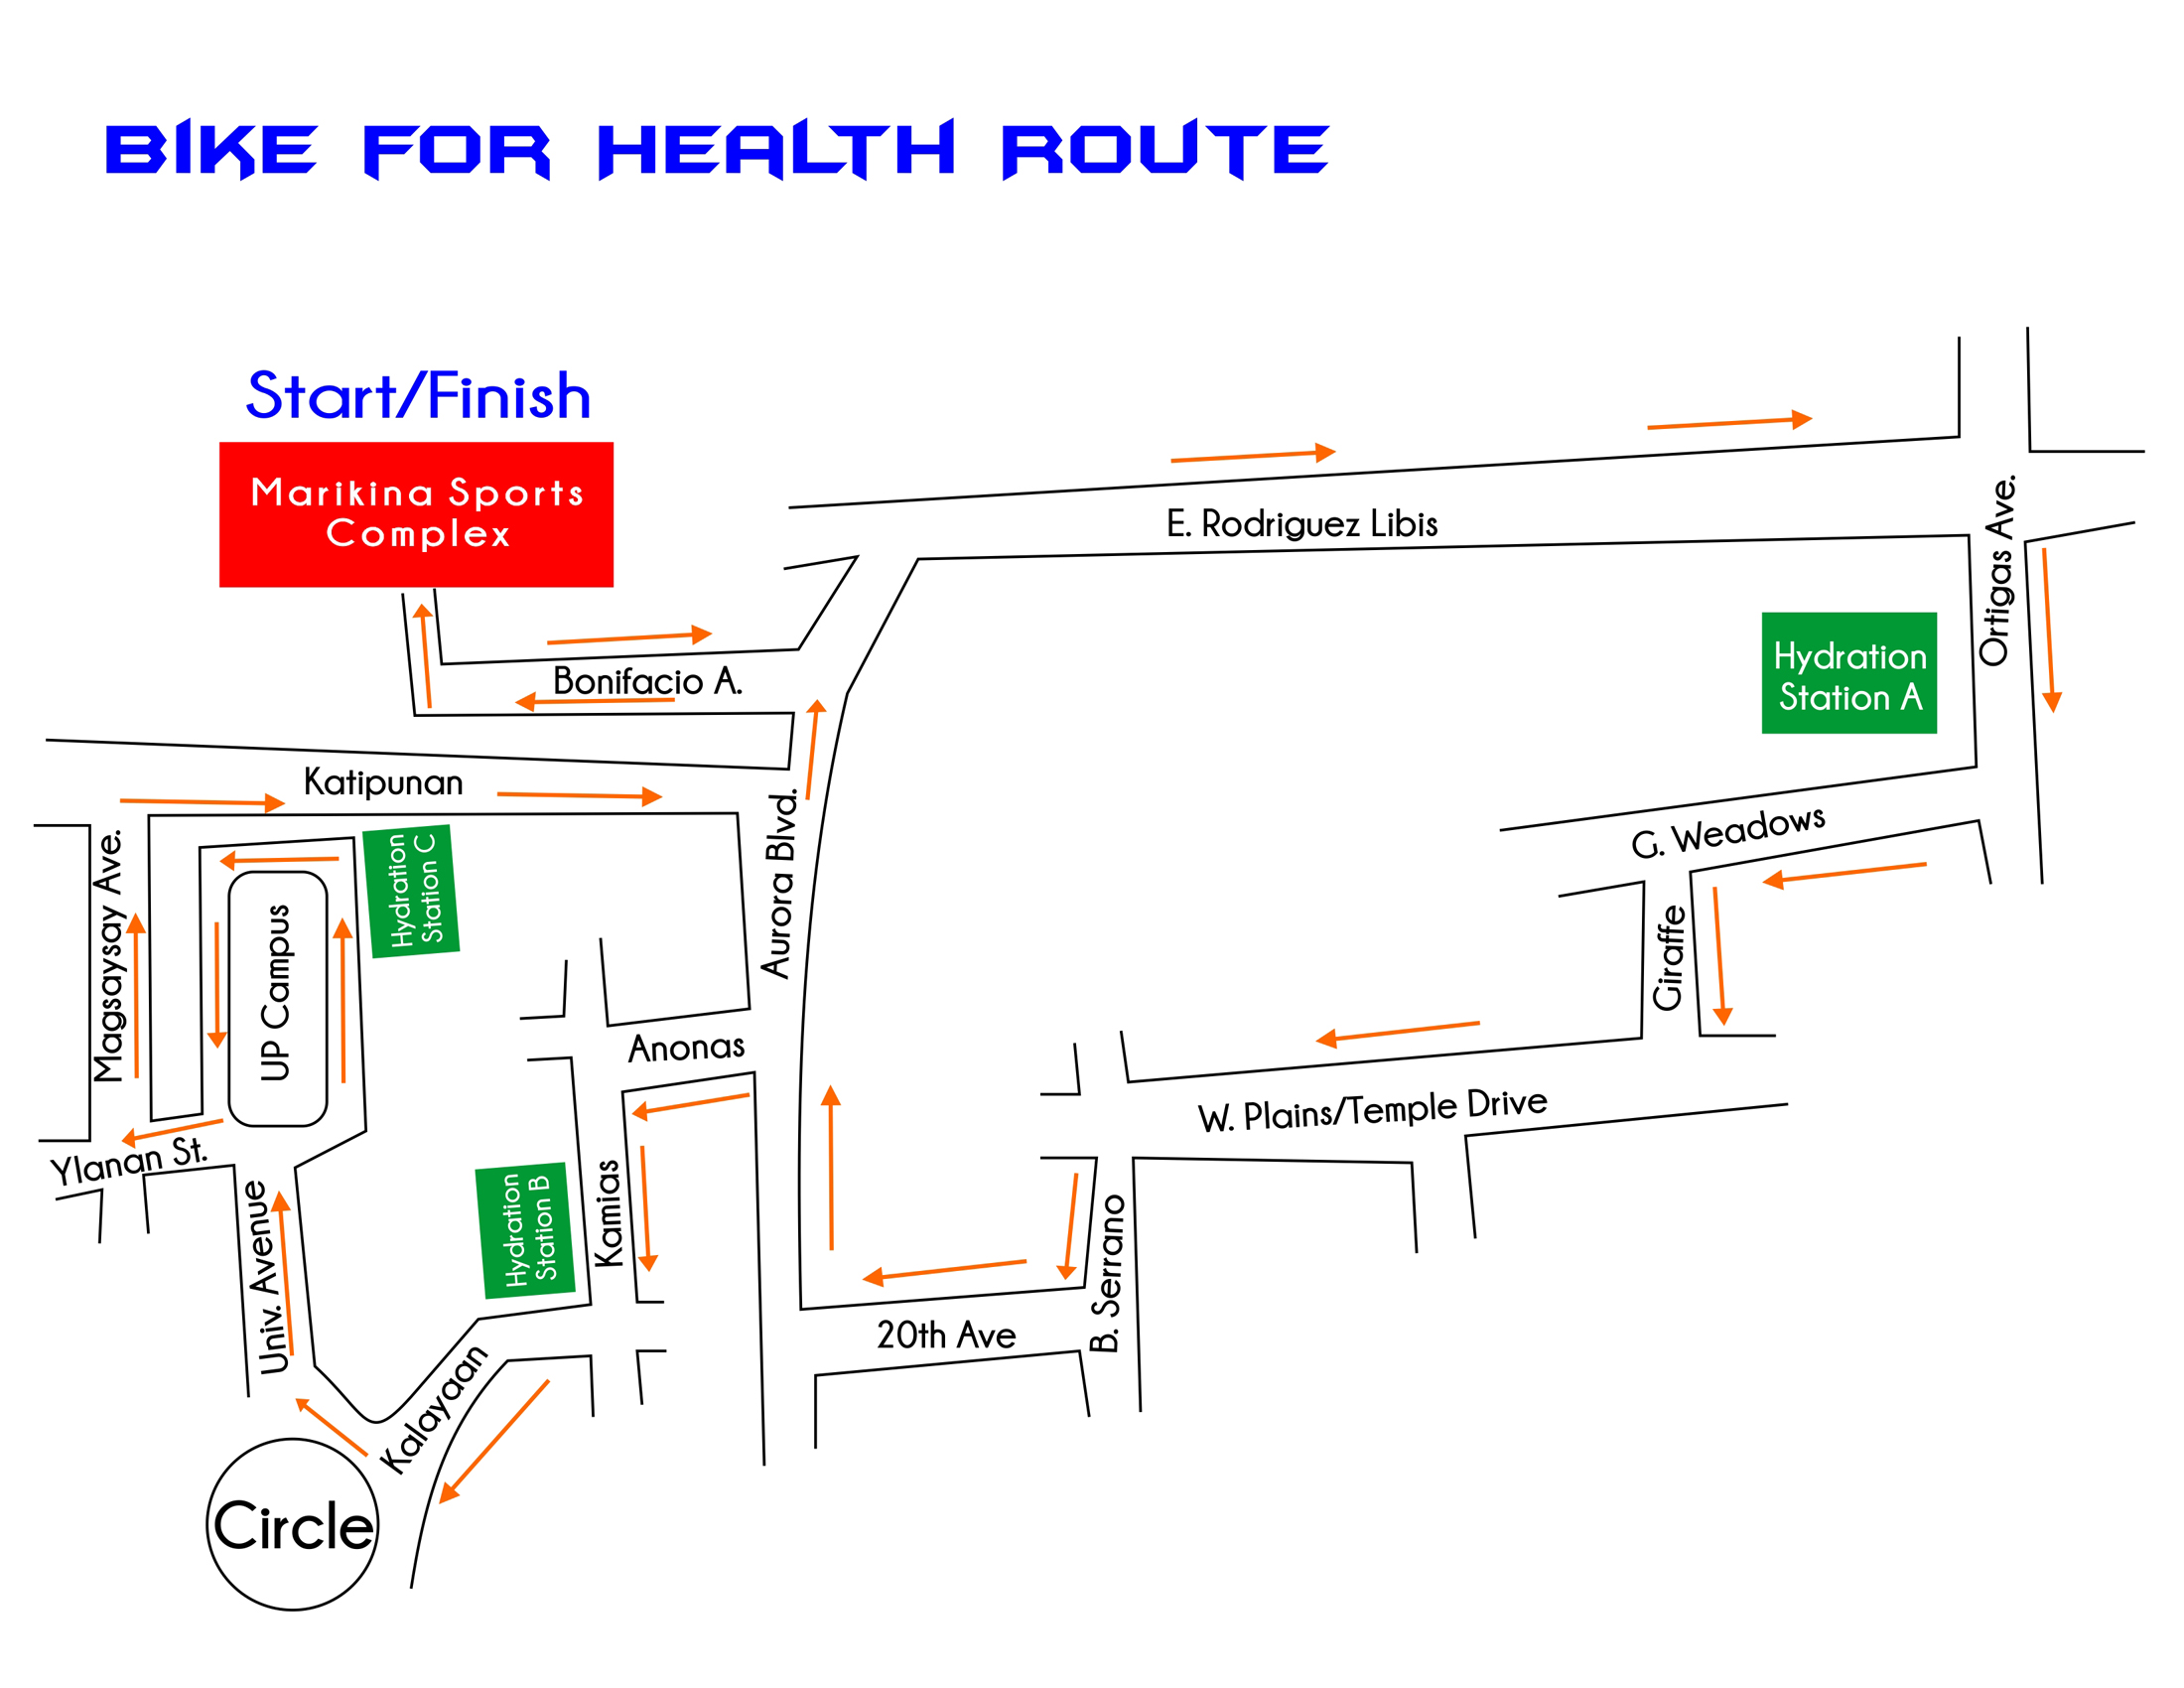 bike-for-health-2013-route-map